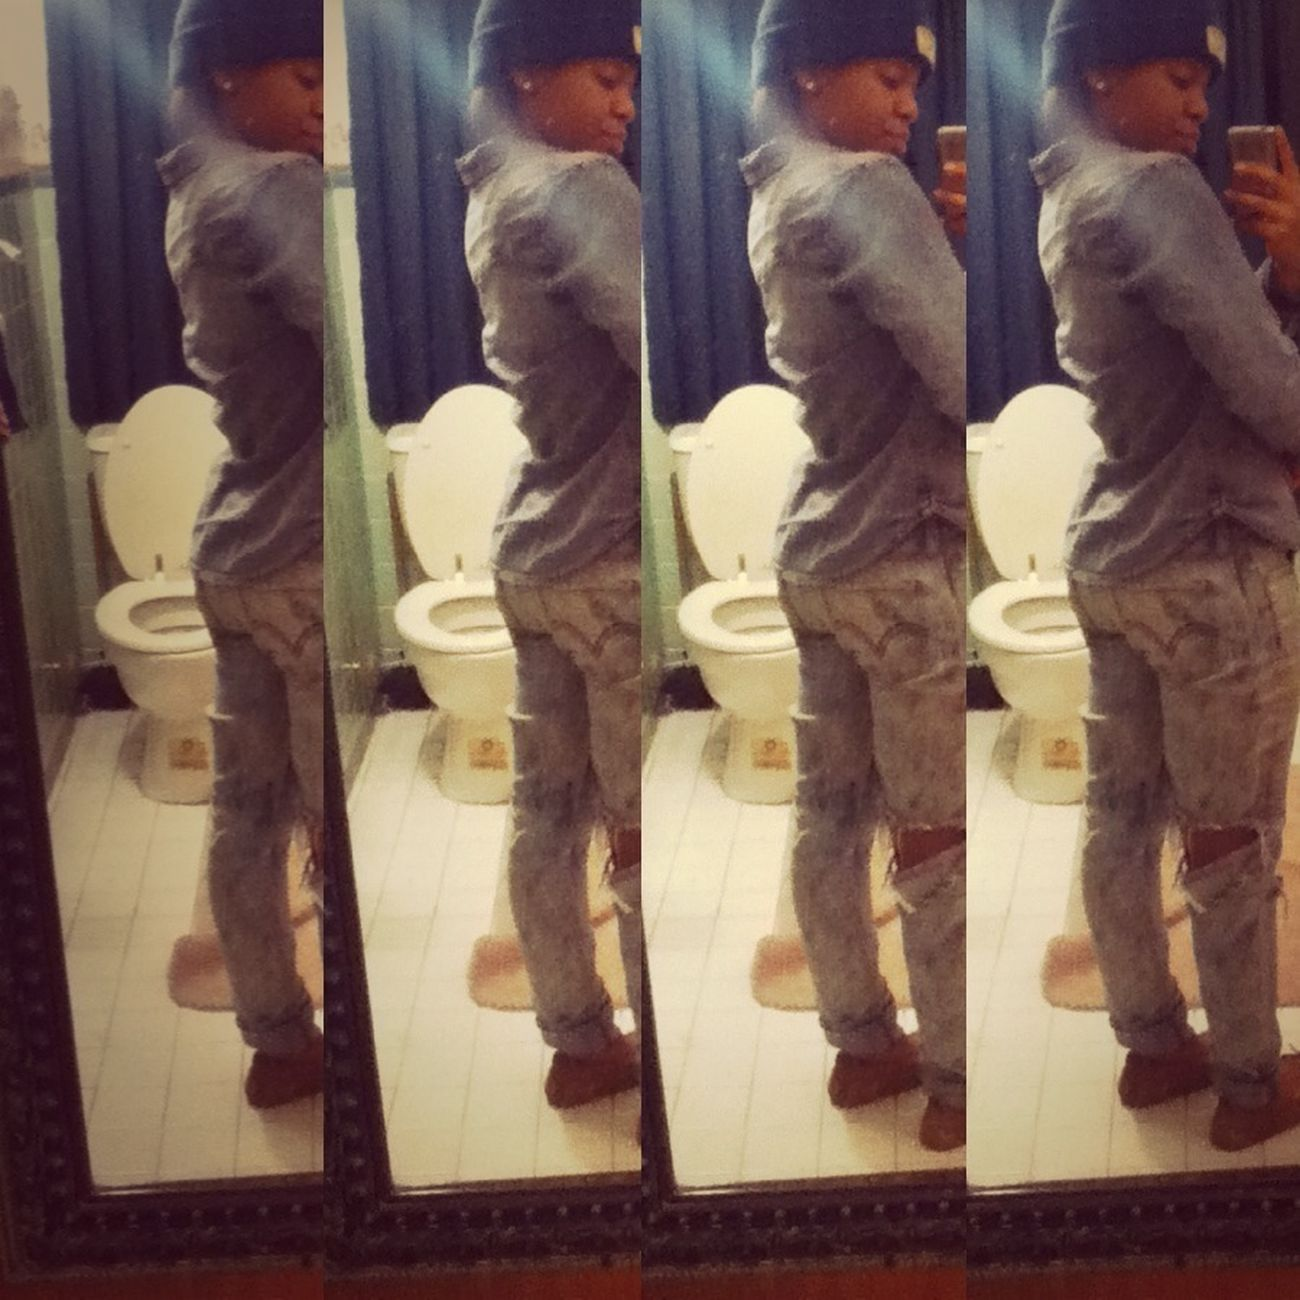 I Gotta Watch My Back , Cause Im Nit Just Anybody .